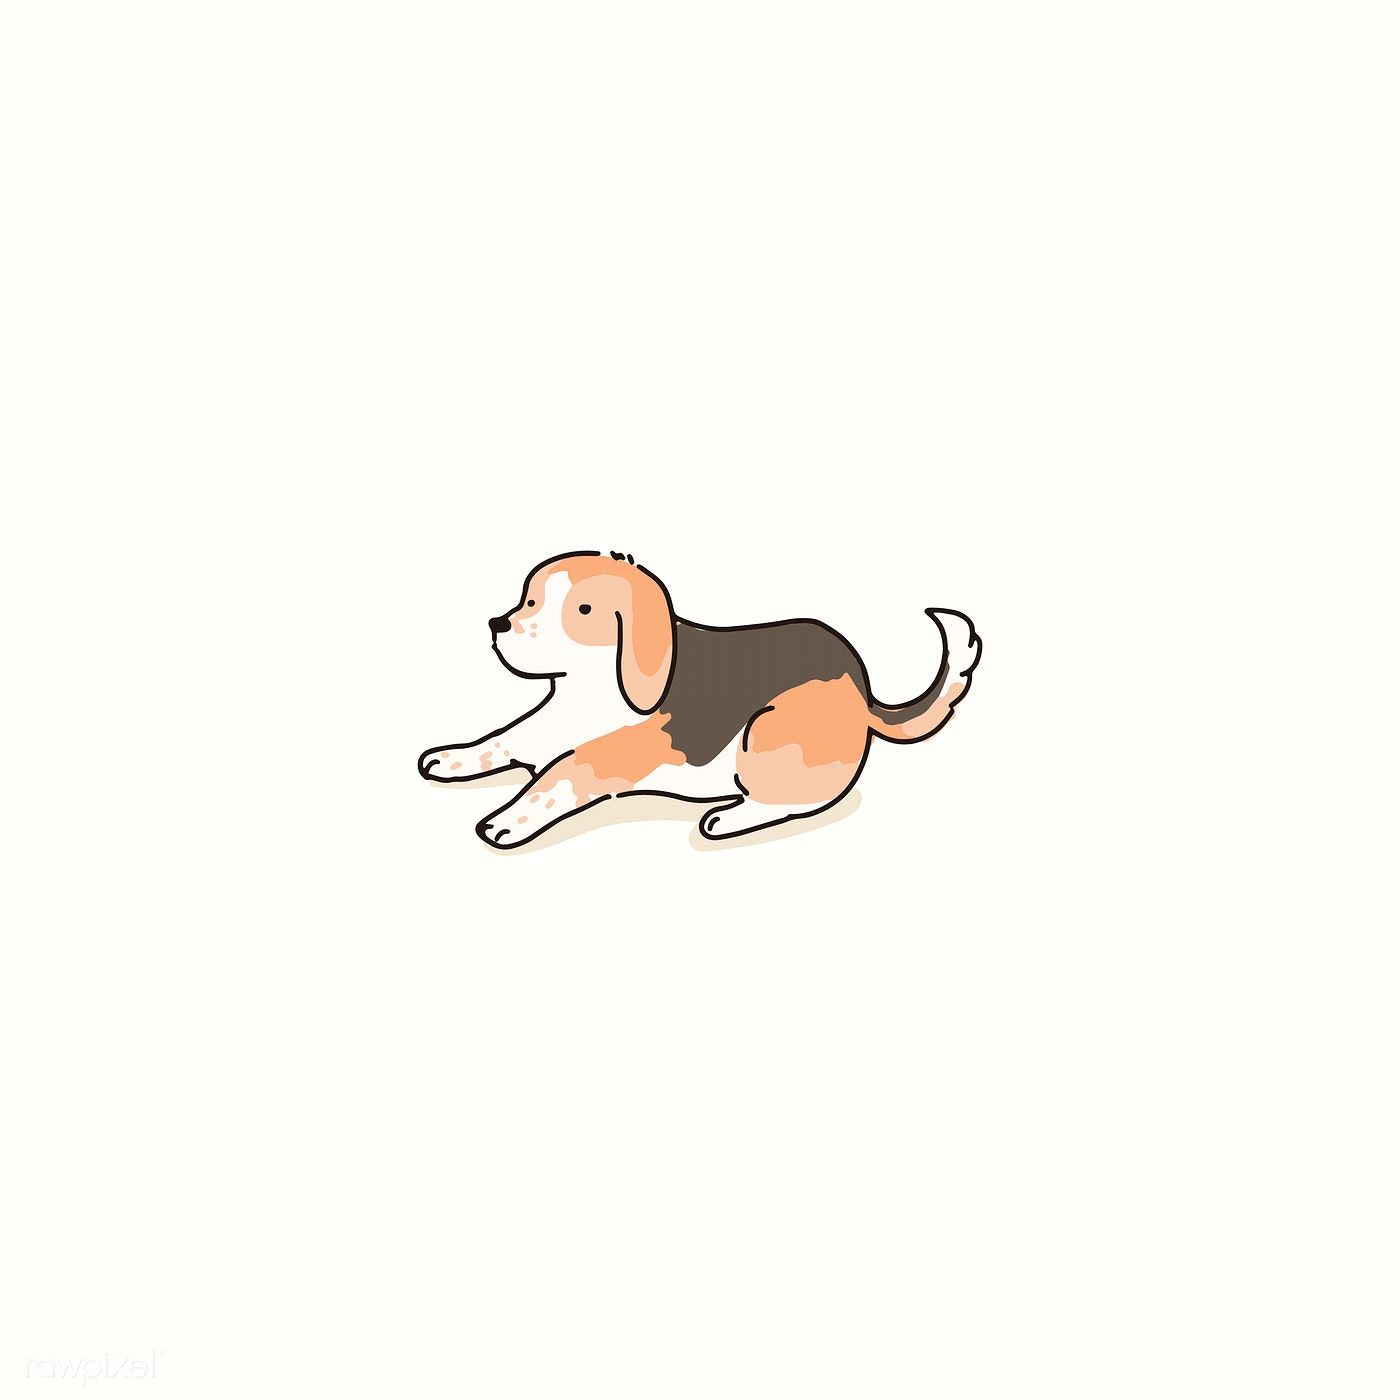 Beagle Dog Doodle Element Vector Premium Image By Rawpixel Com Niwat In 2020 Cute Doodles Dog Drawing Beagle Art